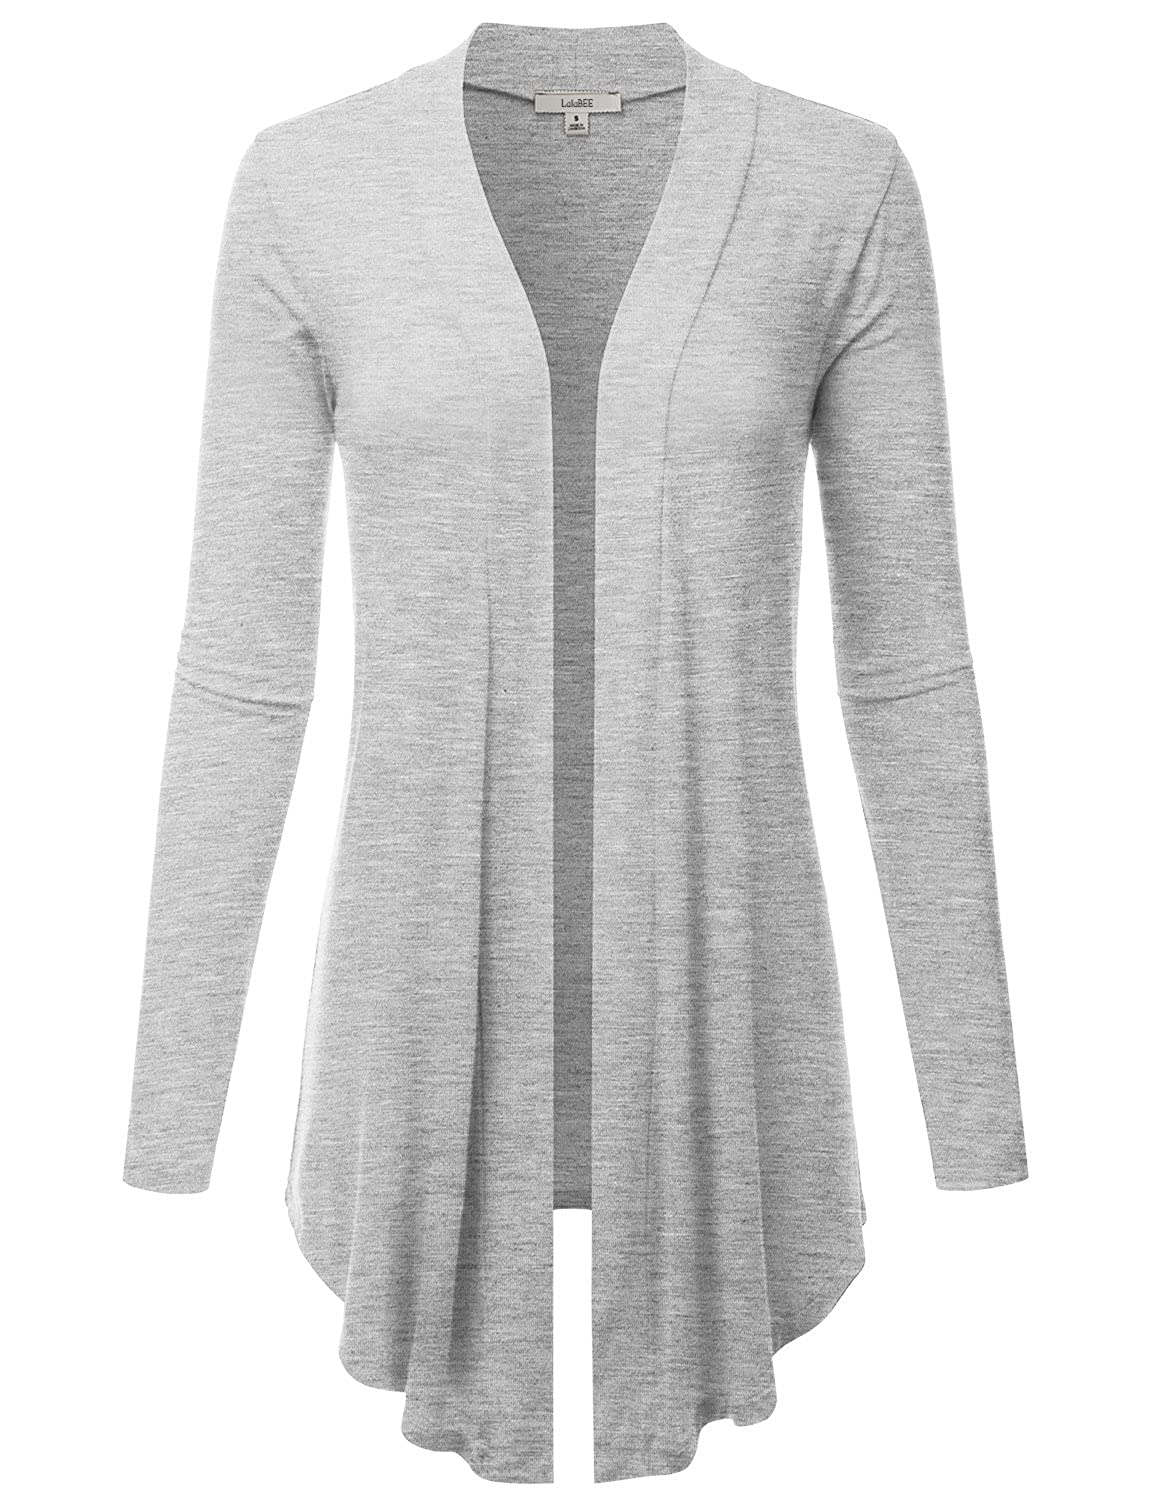 Lbt007hgrey LALABEE Women's Draped OpenFront Long Sleeve Light Weight Cardigan (S3XL)